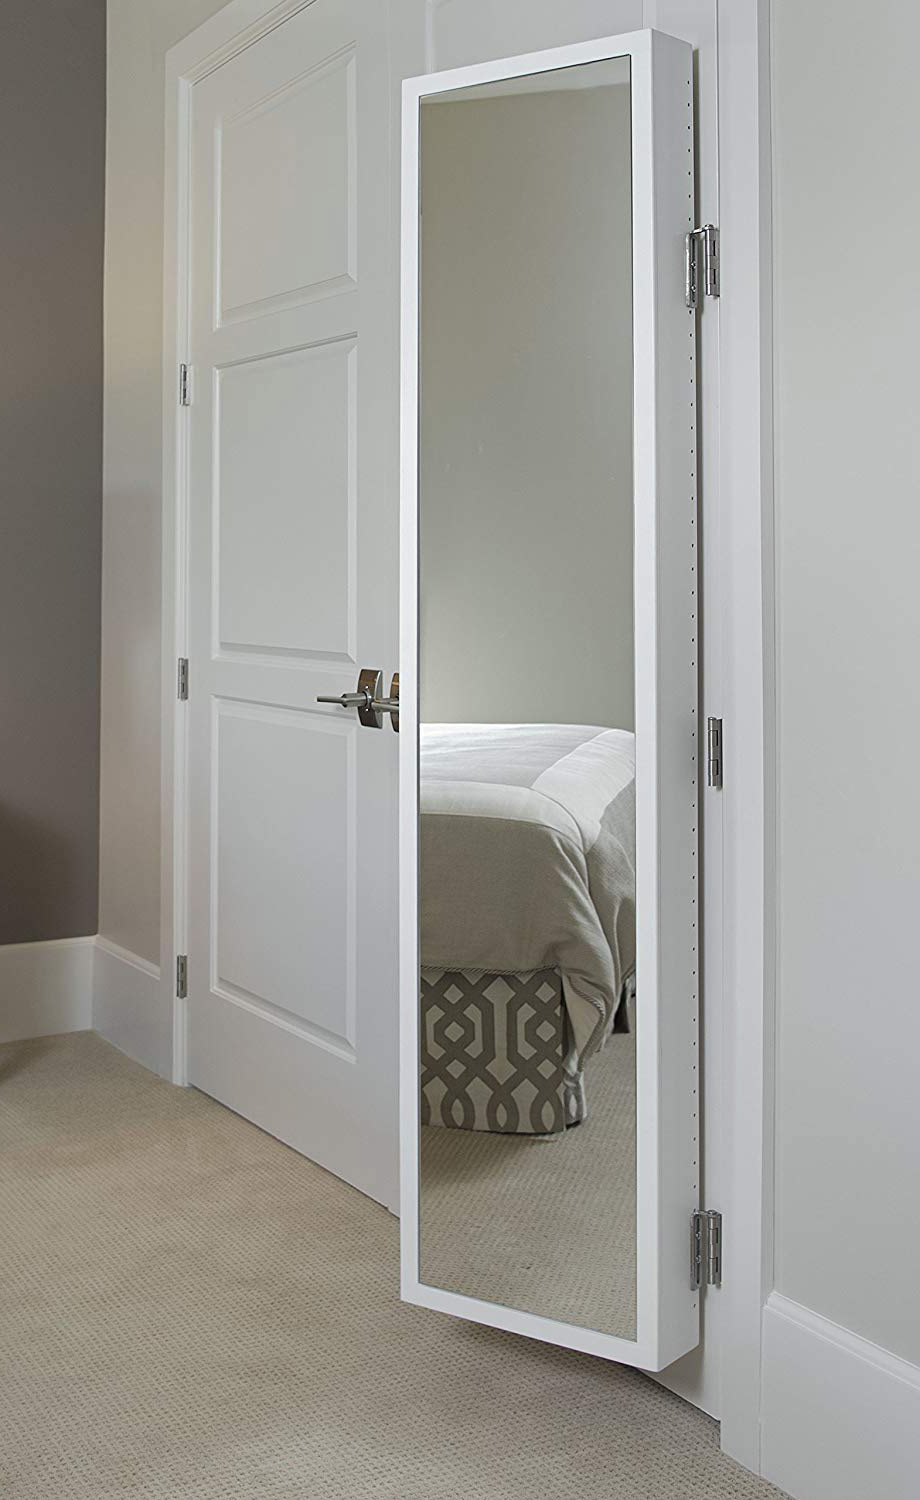 Childrens Full Length Wall Mirrors Intended For Well Known 8 Best Full Length Mirrors To Buy (View 5 of 20)